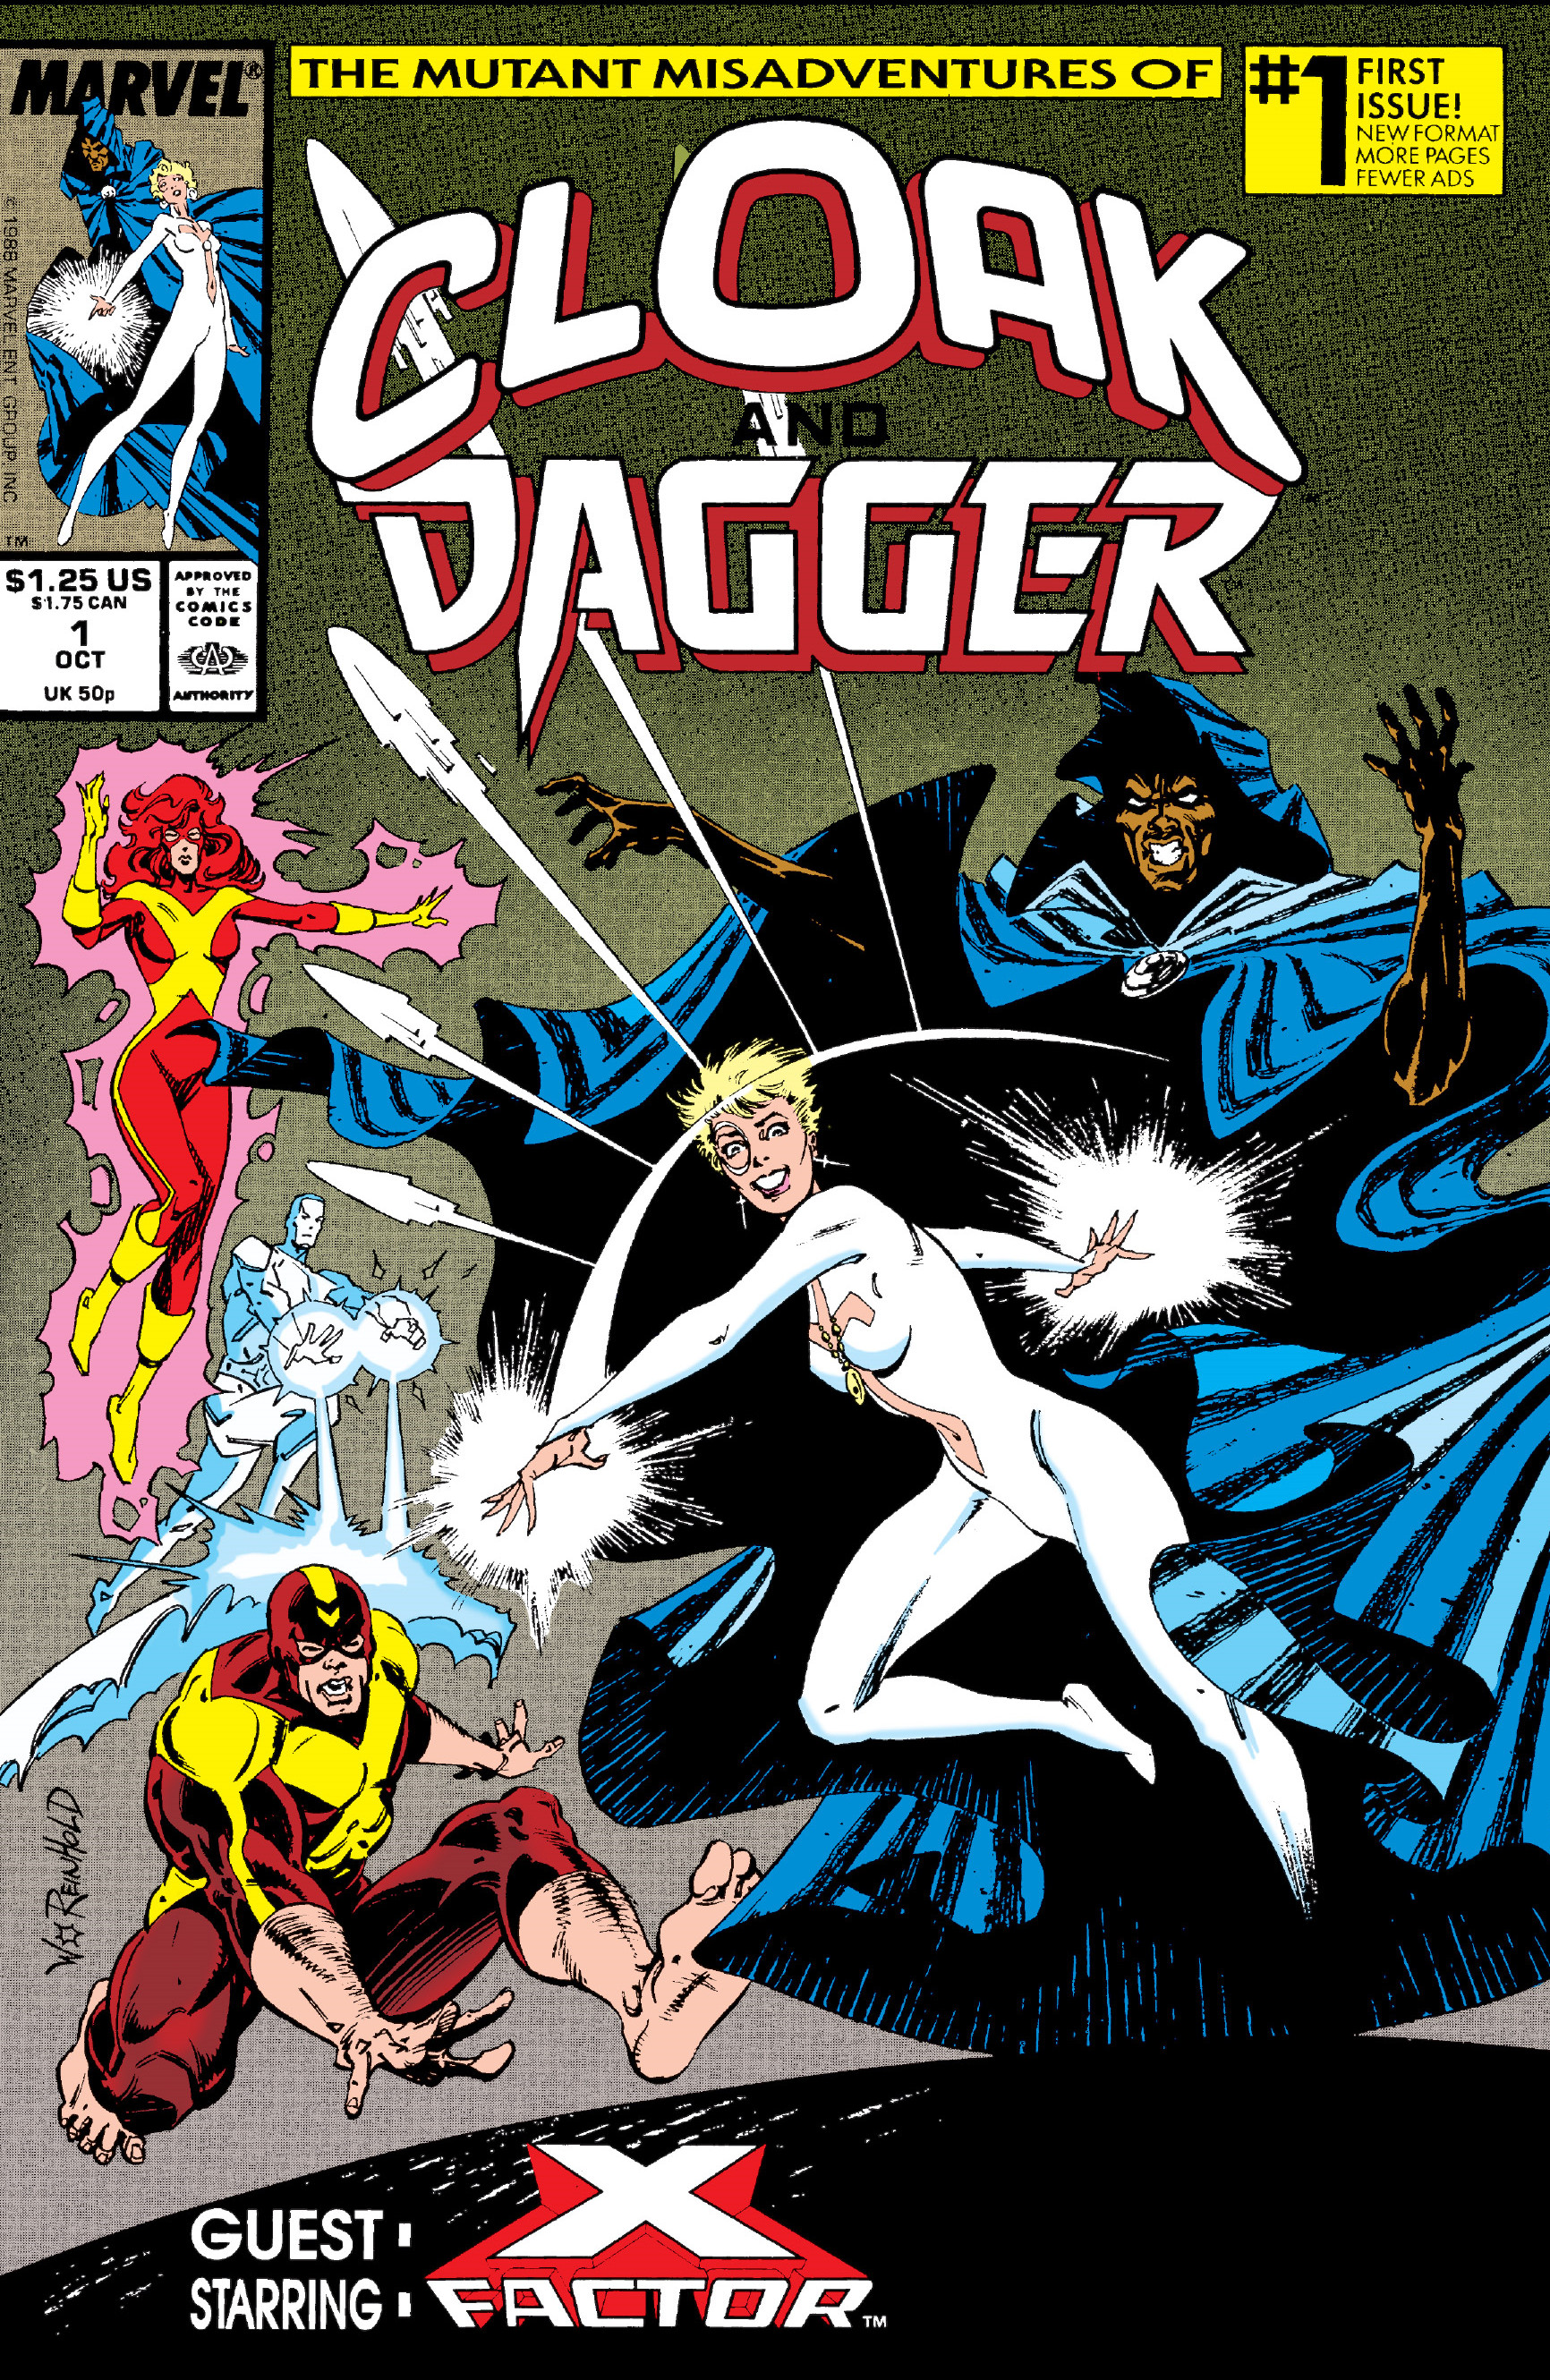 Mutant Misadventures of Cloak and Dagger Vol 1 1